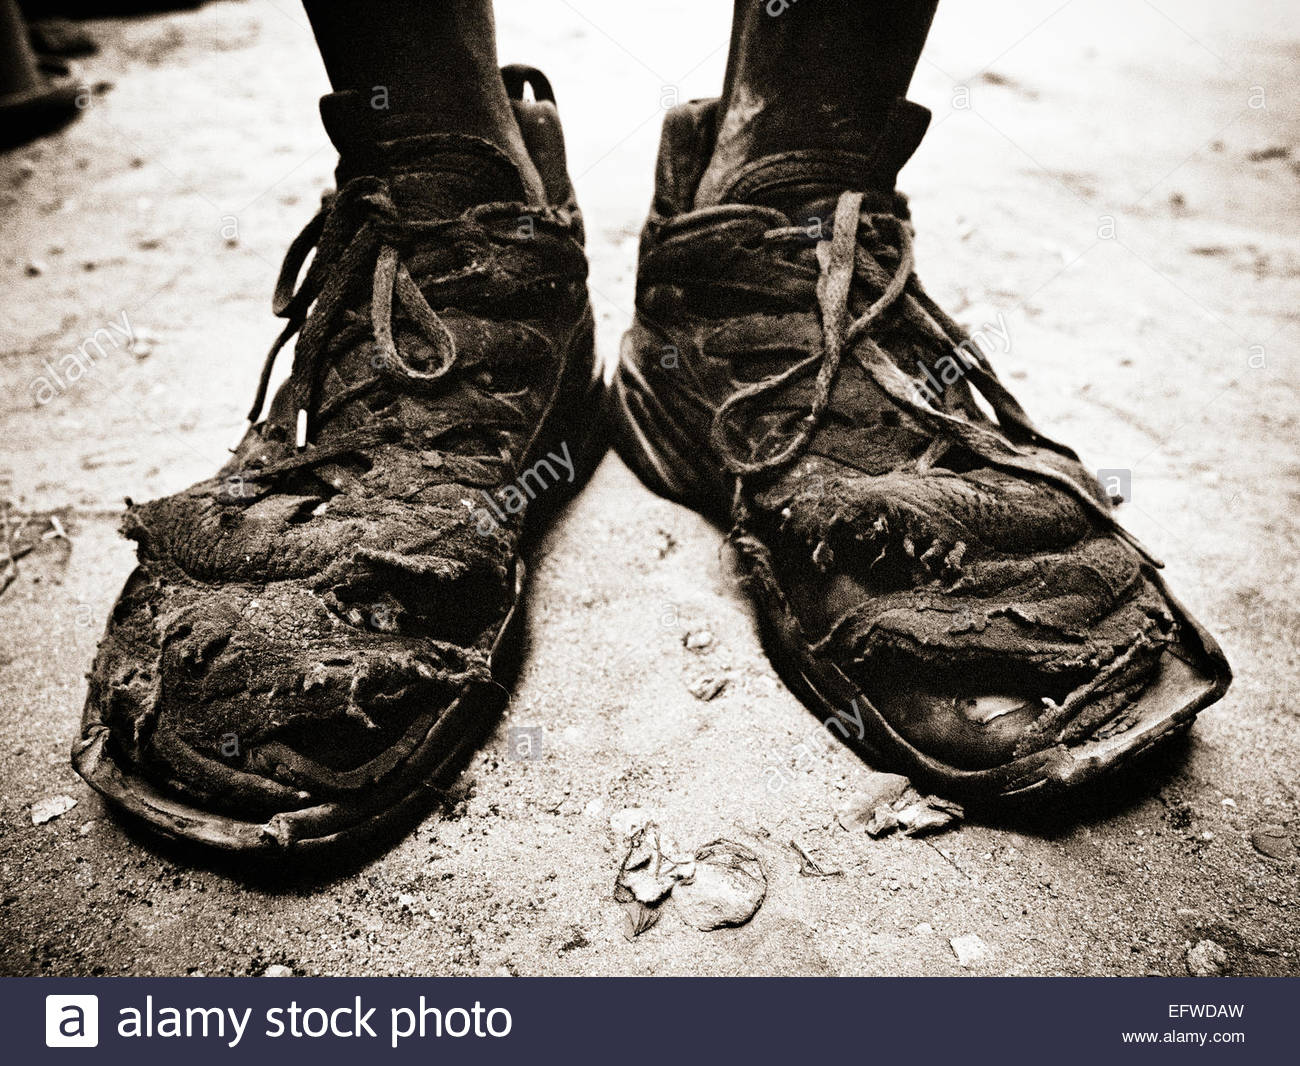 Worn Out Feet Shoes Footwear Toe Toes Holes Shoe Used Old Secondhand Stock Photo Royalty Free